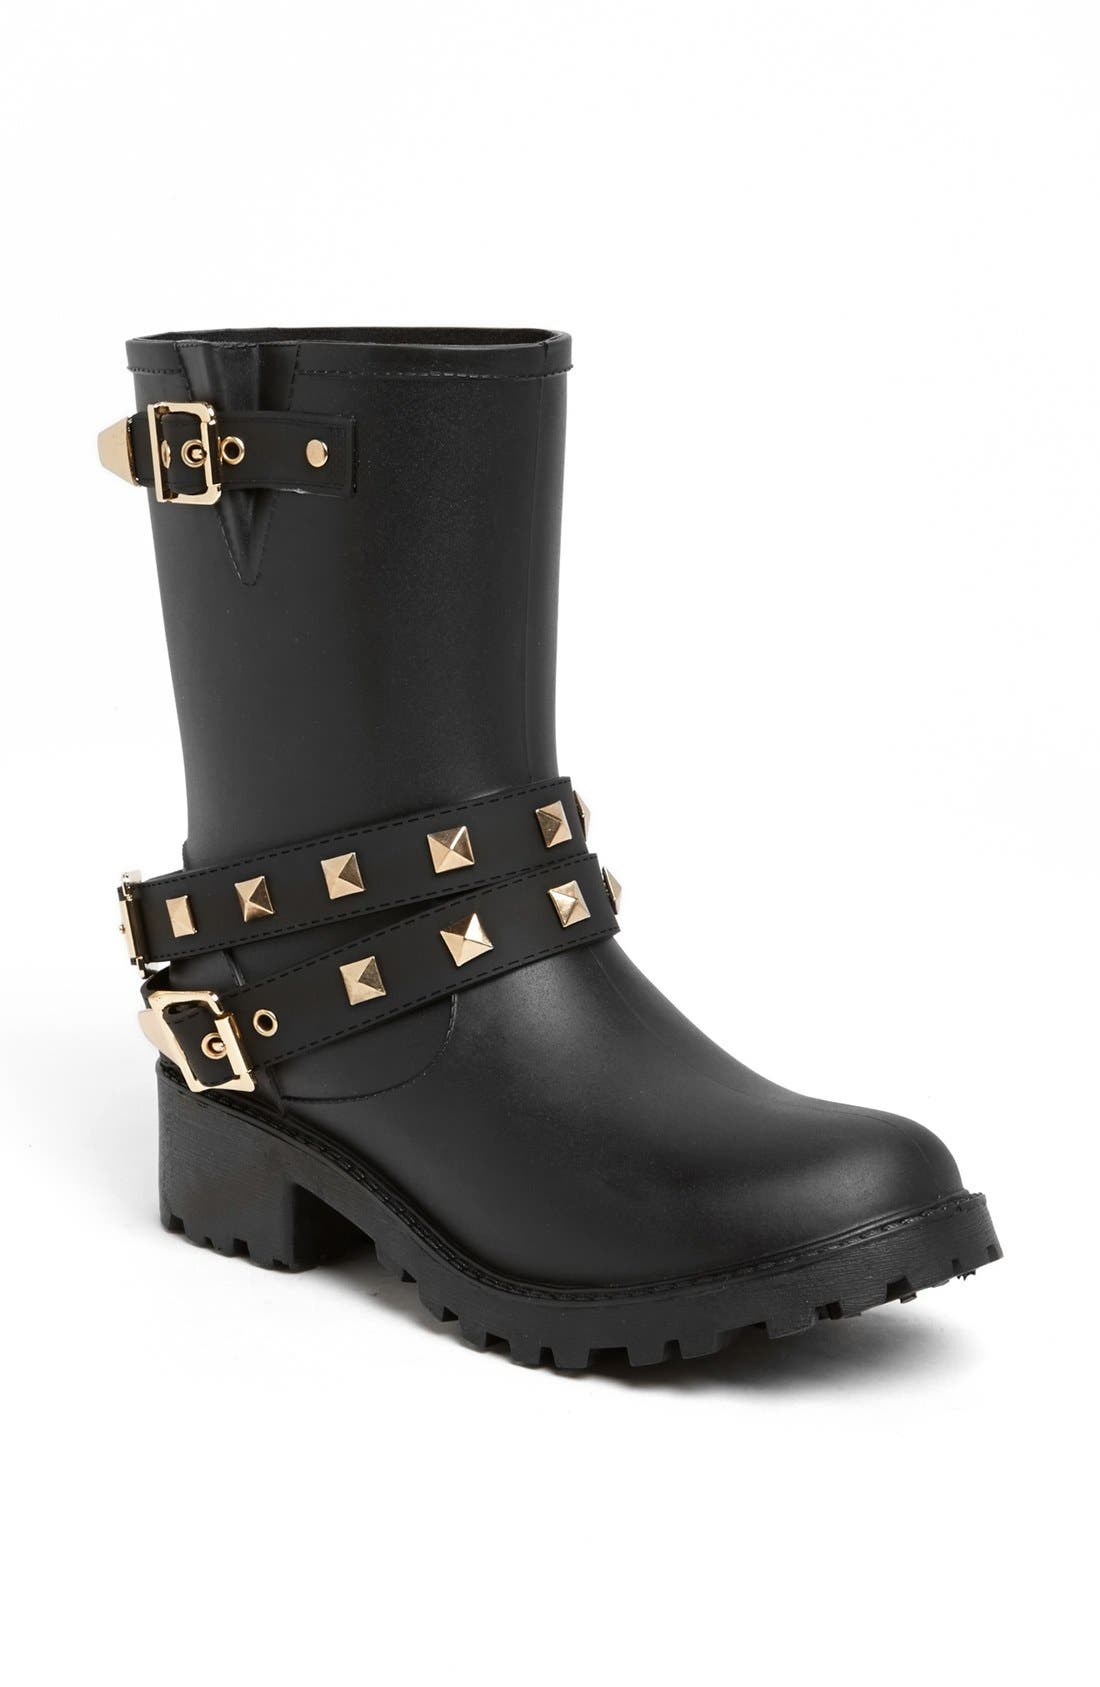 Alternate Image 1 Selected - Steve Madden 'Downpour' Rain Boot